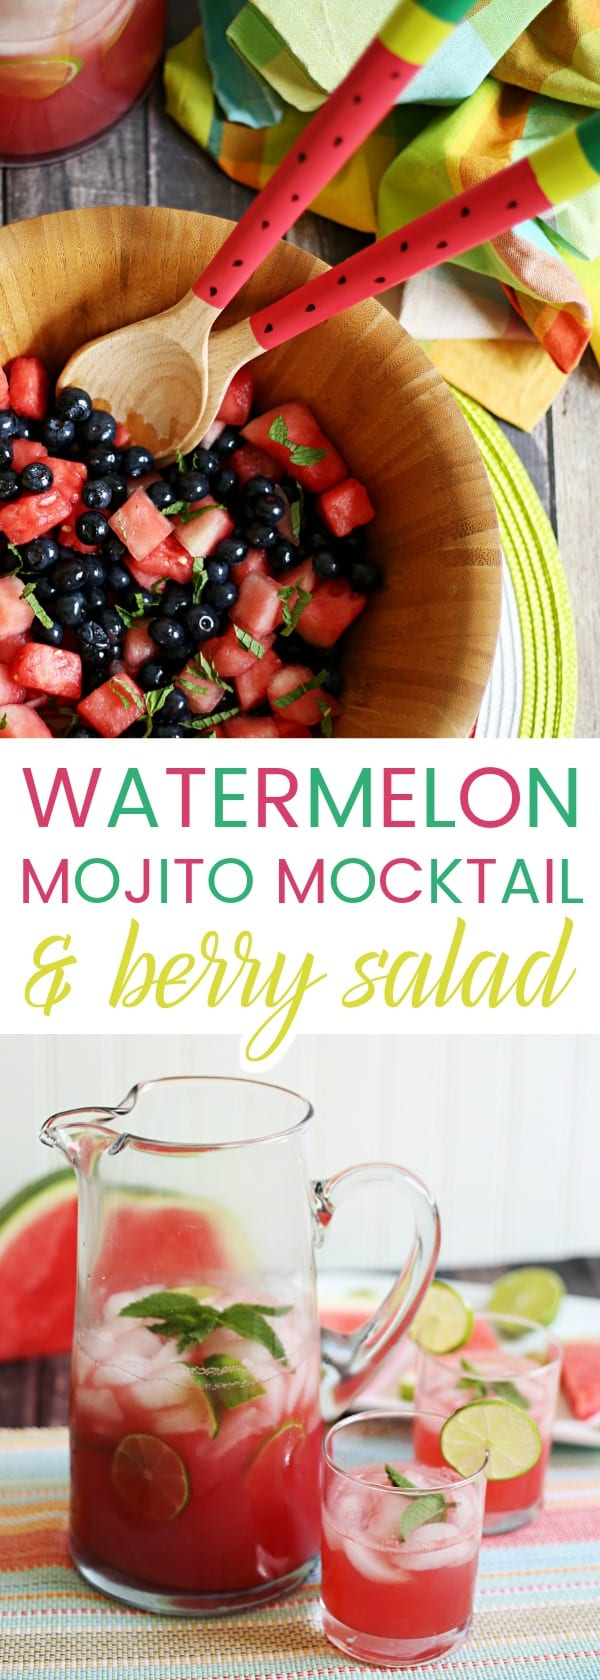 Watermelon Mojito Mocktail Amp Berry Salad The Anti June